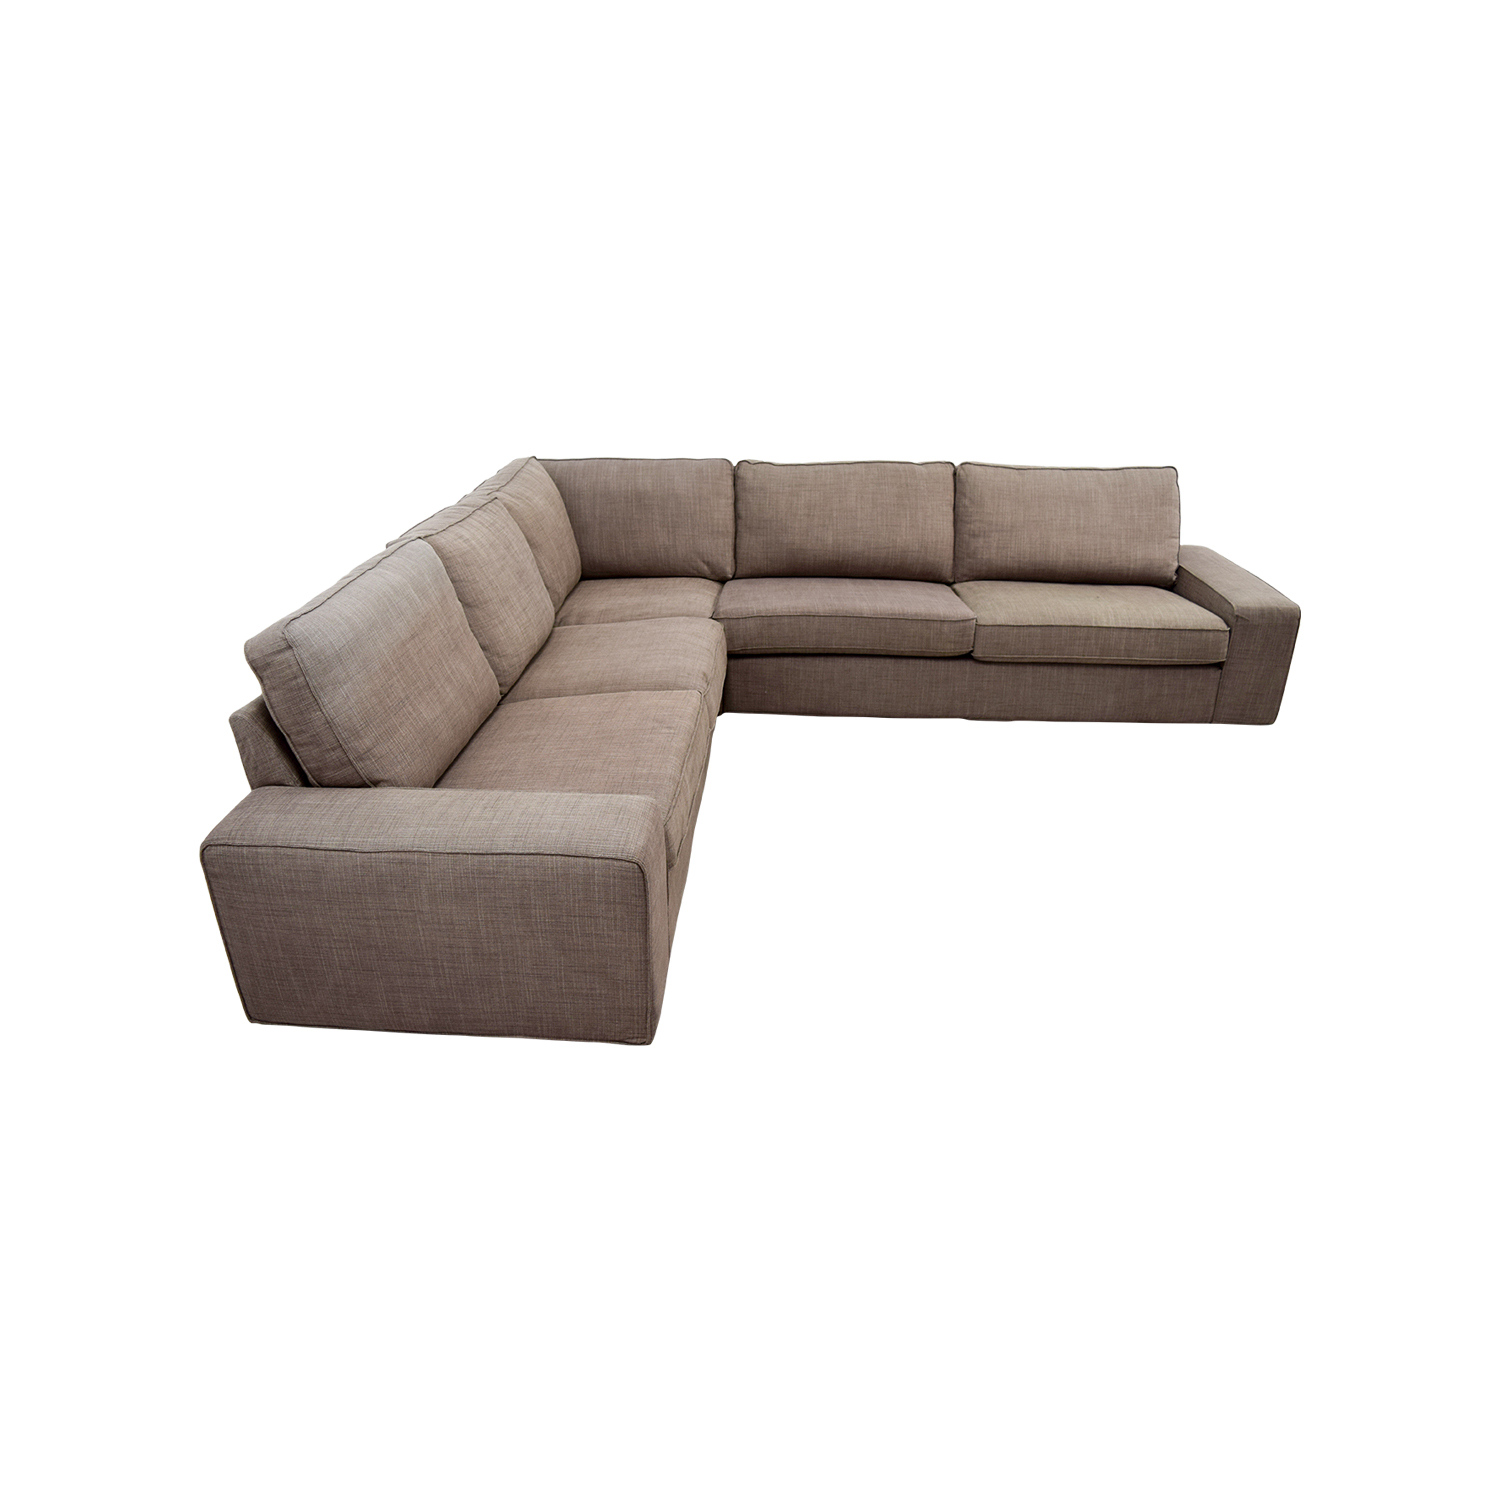 57 off ikea ikea kivik brown sectional sofas. Black Bedroom Furniture Sets. Home Design Ideas